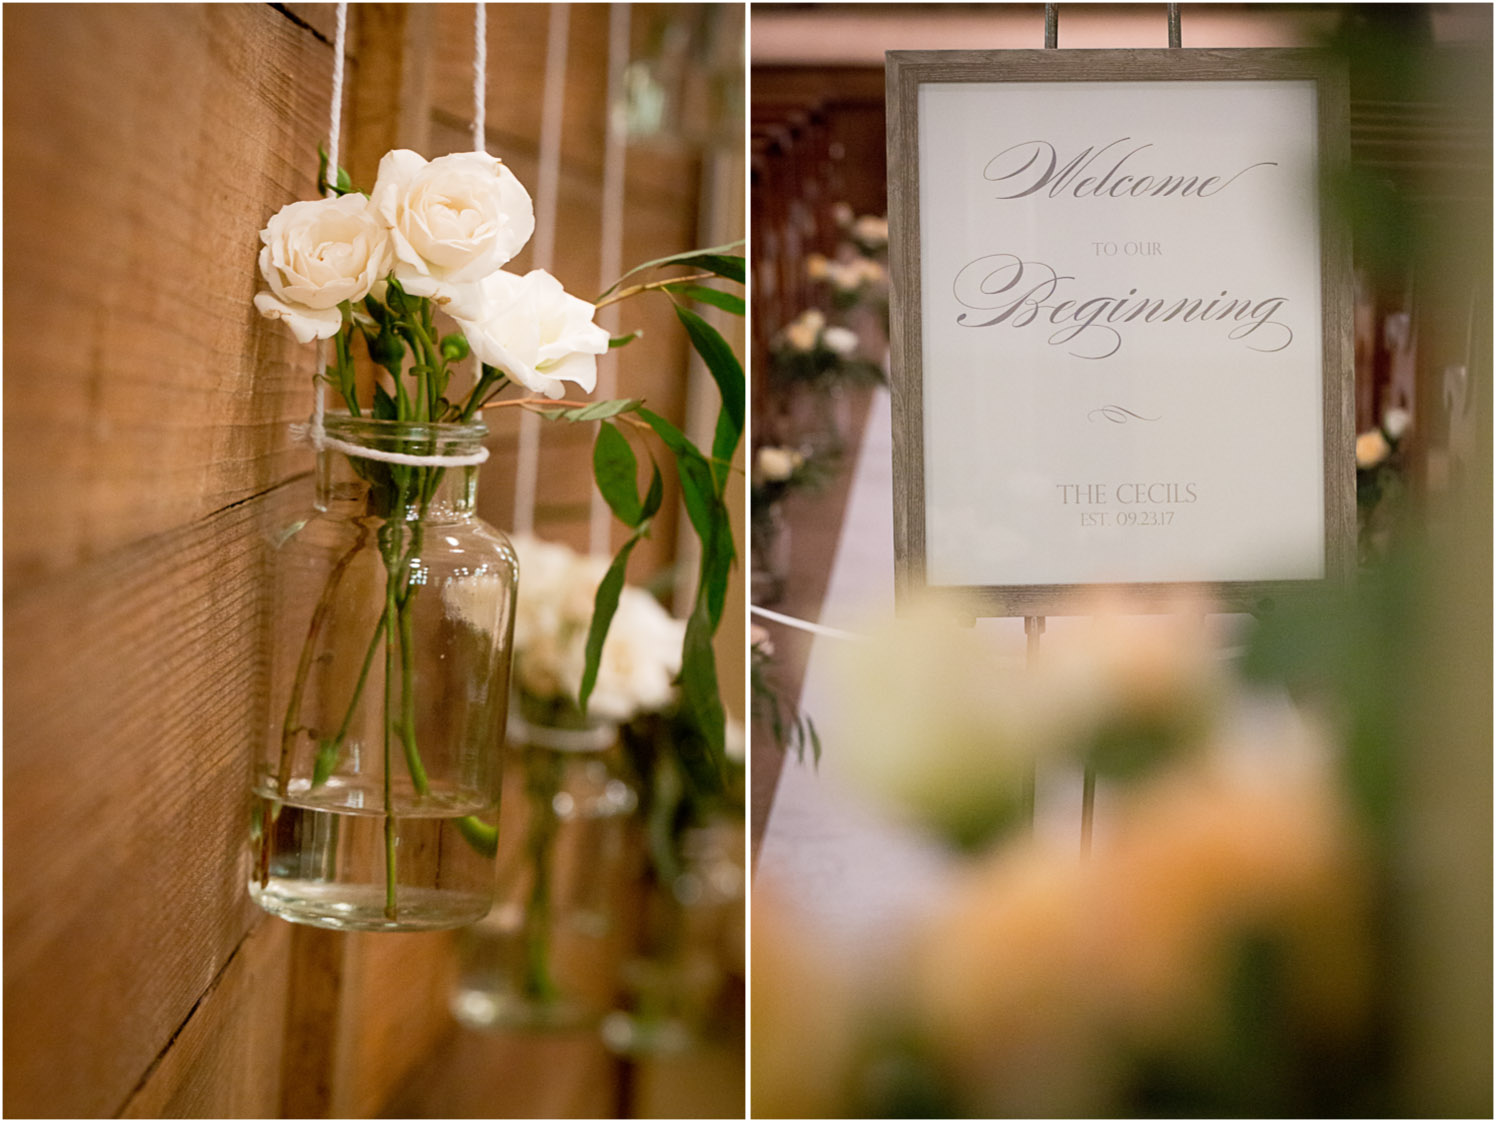 10-hope-community-church-wedding-ceremony-details-pink-roses-glass-vase-wood-wall-altar-welcome-to-our-new-beginning-sign-minneapolis-minnesota-mahonen-photography.jpg